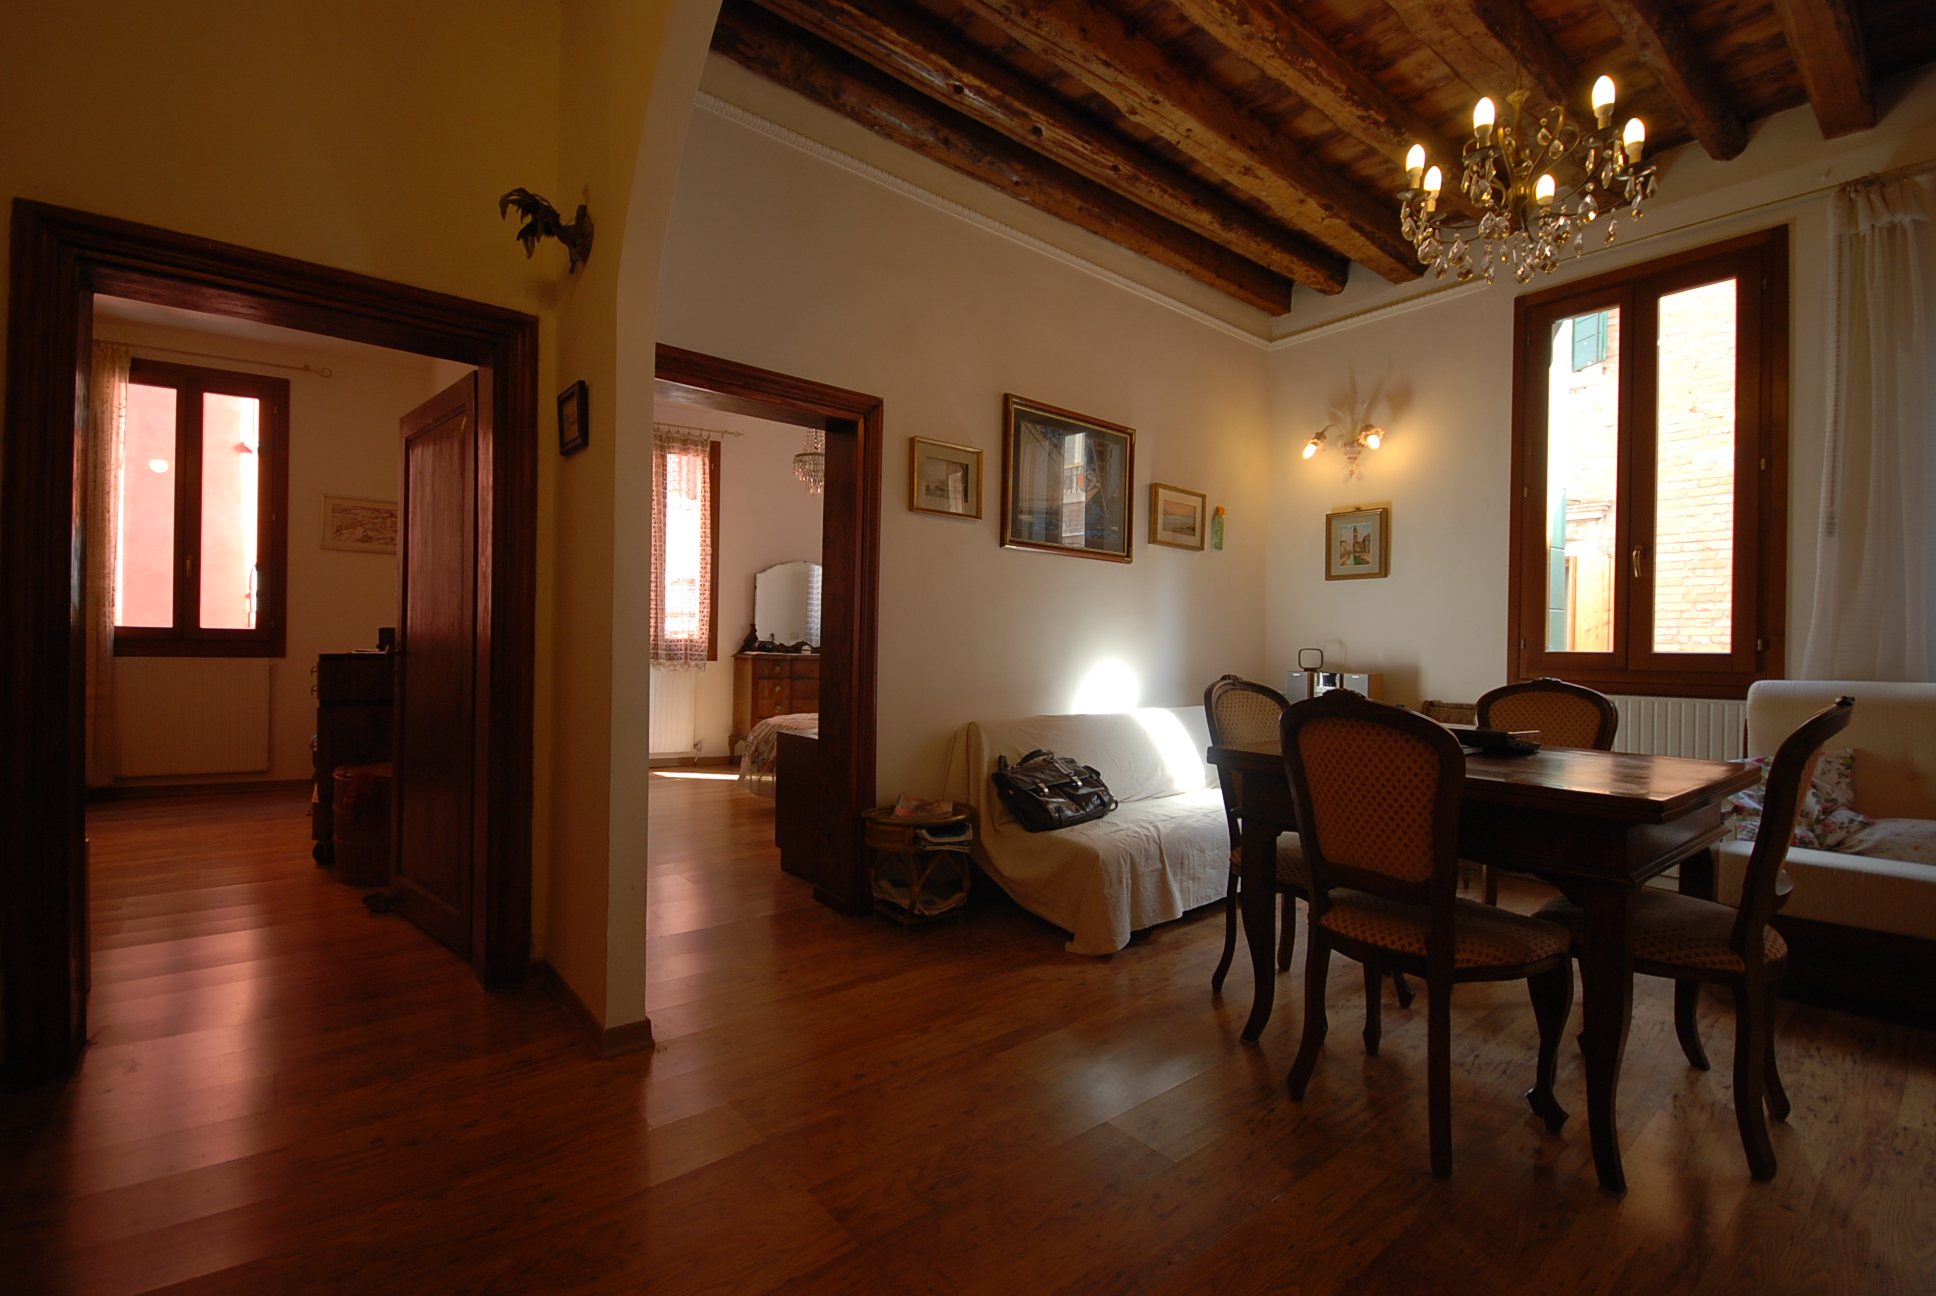 Apartment - La Galea - Venezia ( Venice ) - Home